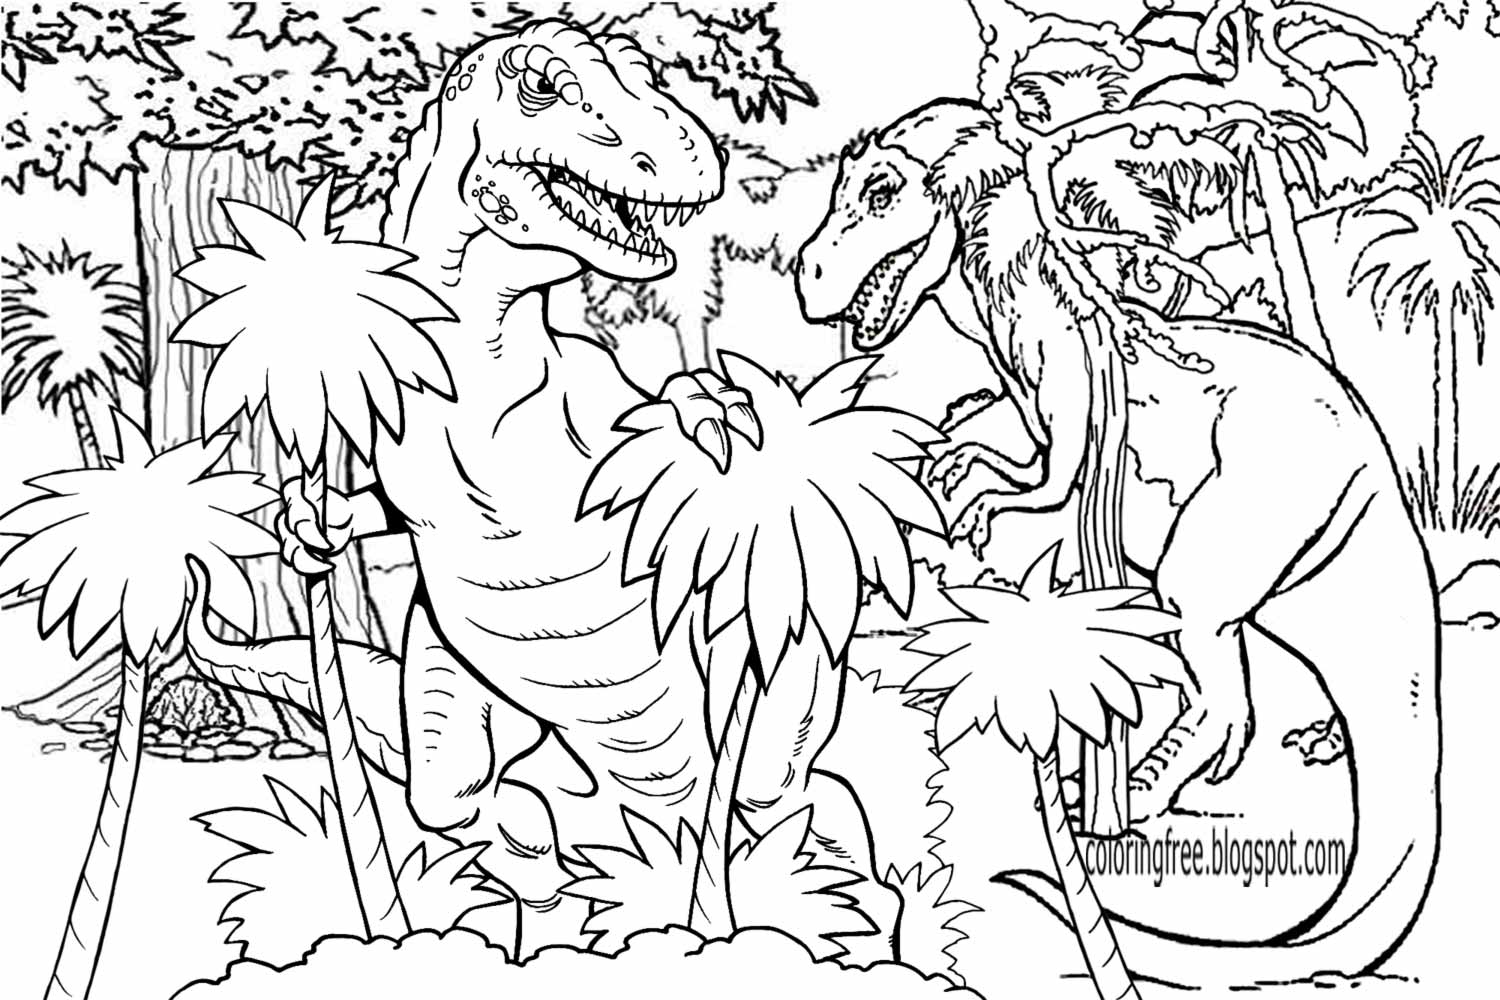 free printable dinosaur coloring pages dinosaur coloring pages print pictures dinosaur coloring dinosaur free pages printable coloring